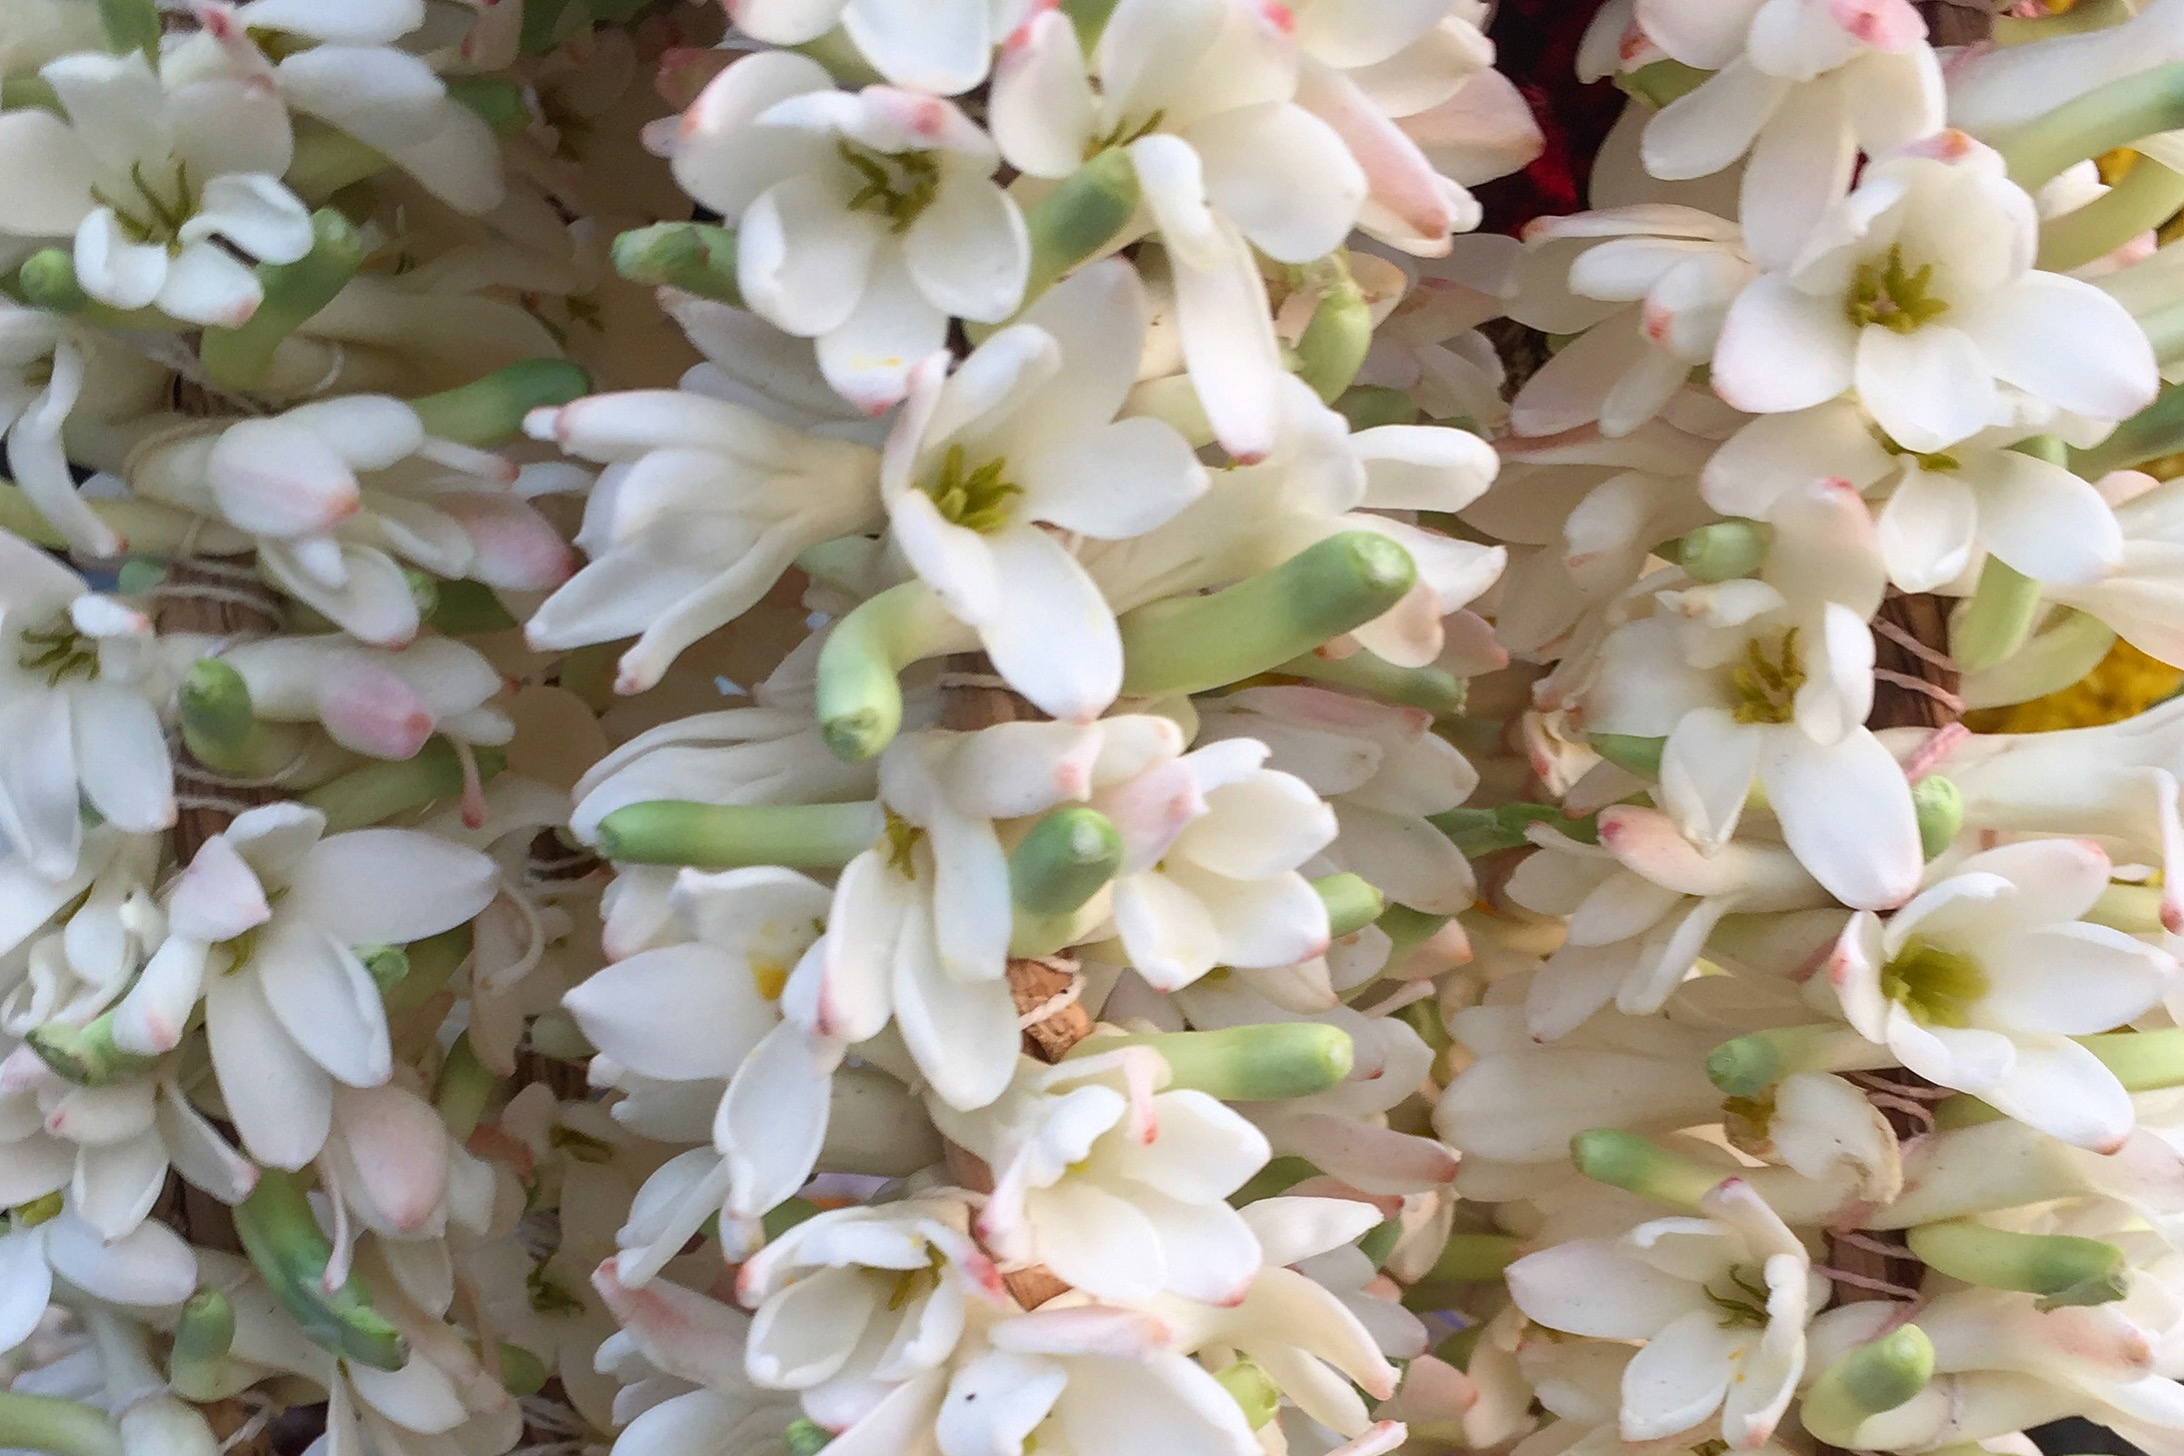 natural body products   tuberose   natural bodycare products